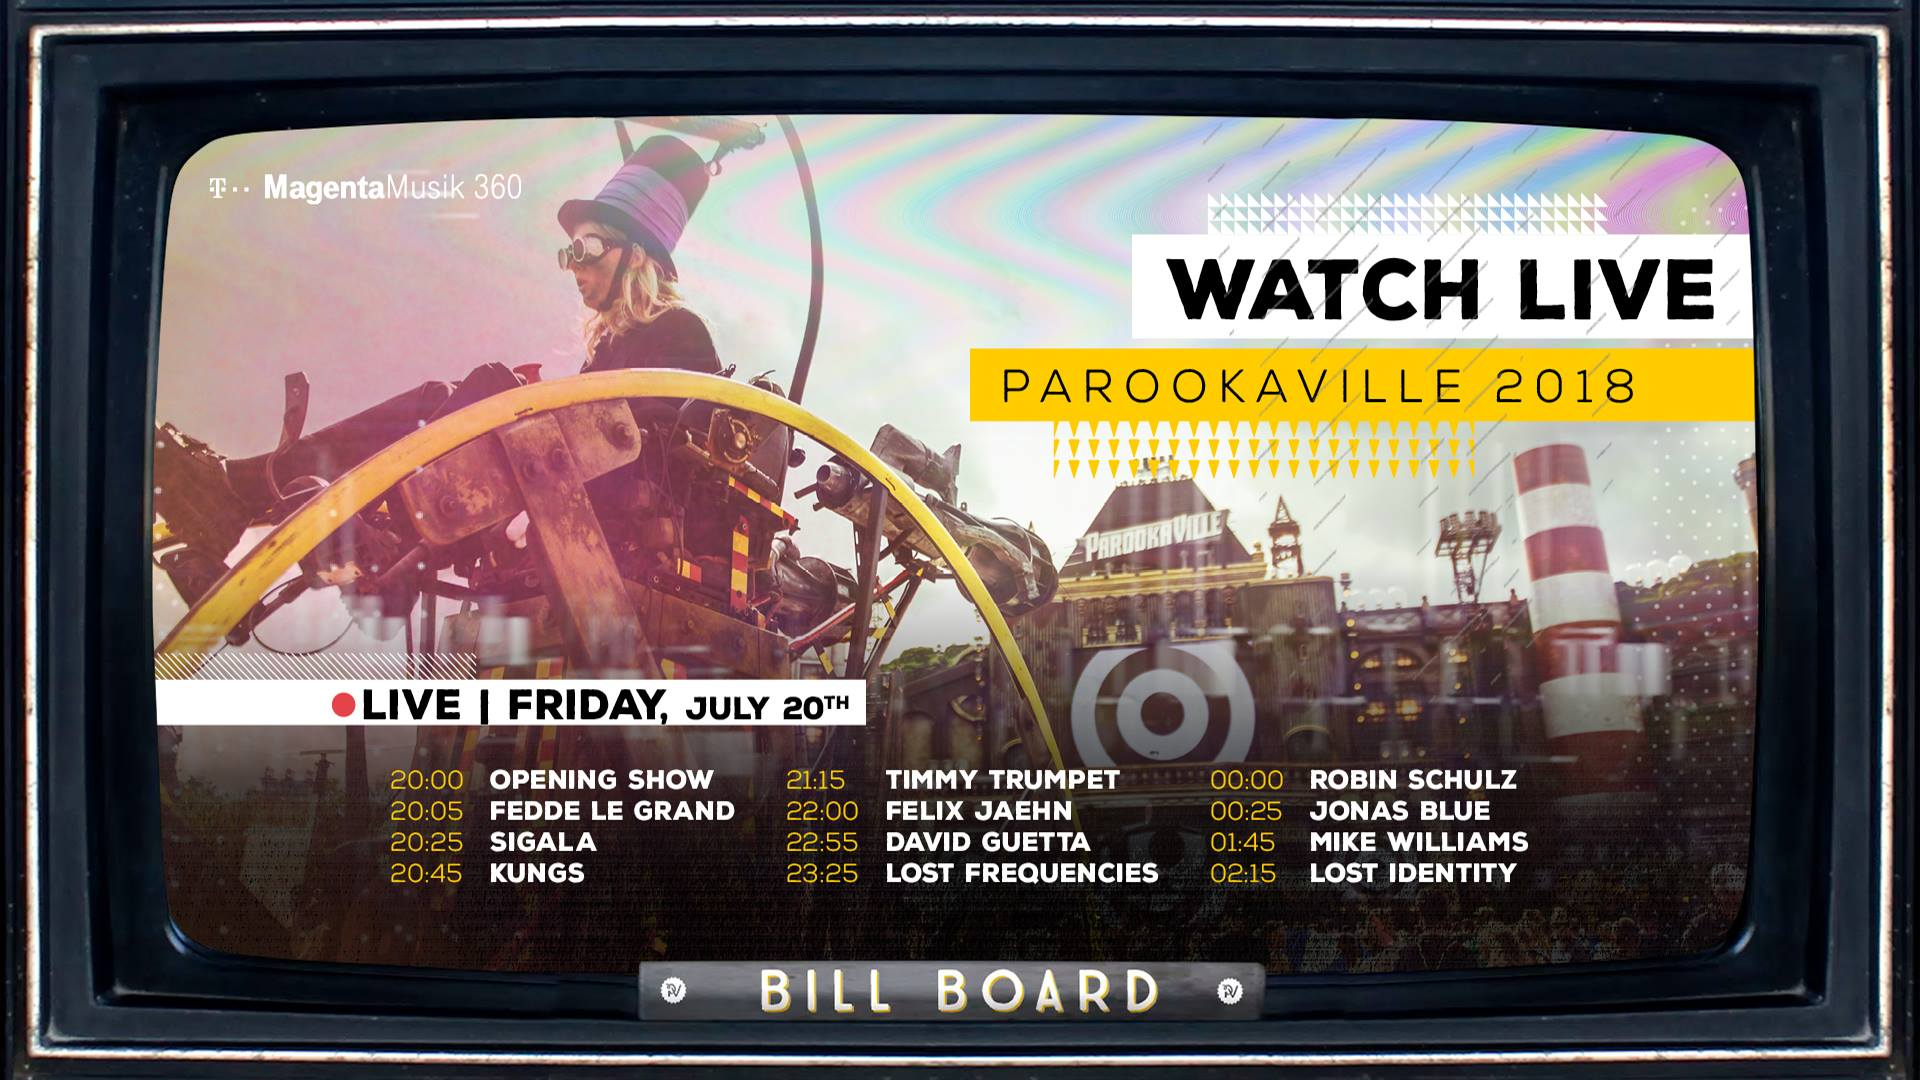 download → Armin Van Buuren, Carnage, David Guetta, Fedde Le Grand, Galantis, Jauz, KSHMR, Steve Aoki, etc - live at Parookaville 2018 (Germany) - July 2018